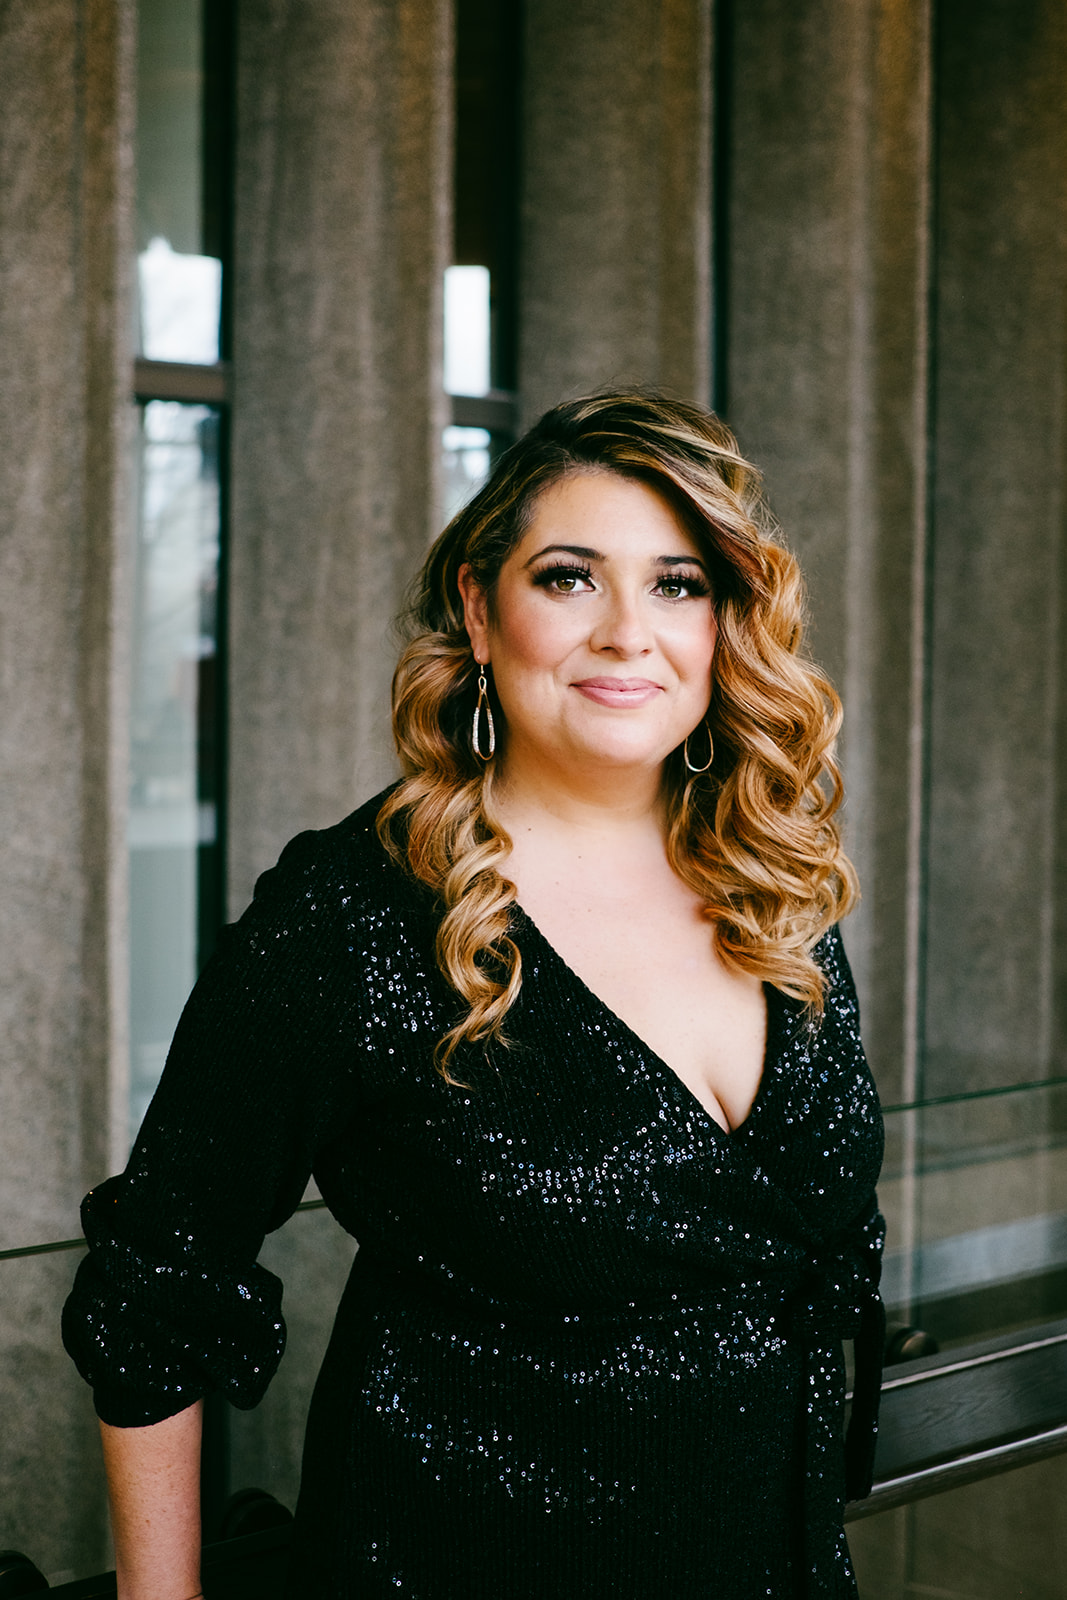 Event planner Ottawa, Quebec, Laval, Montreal